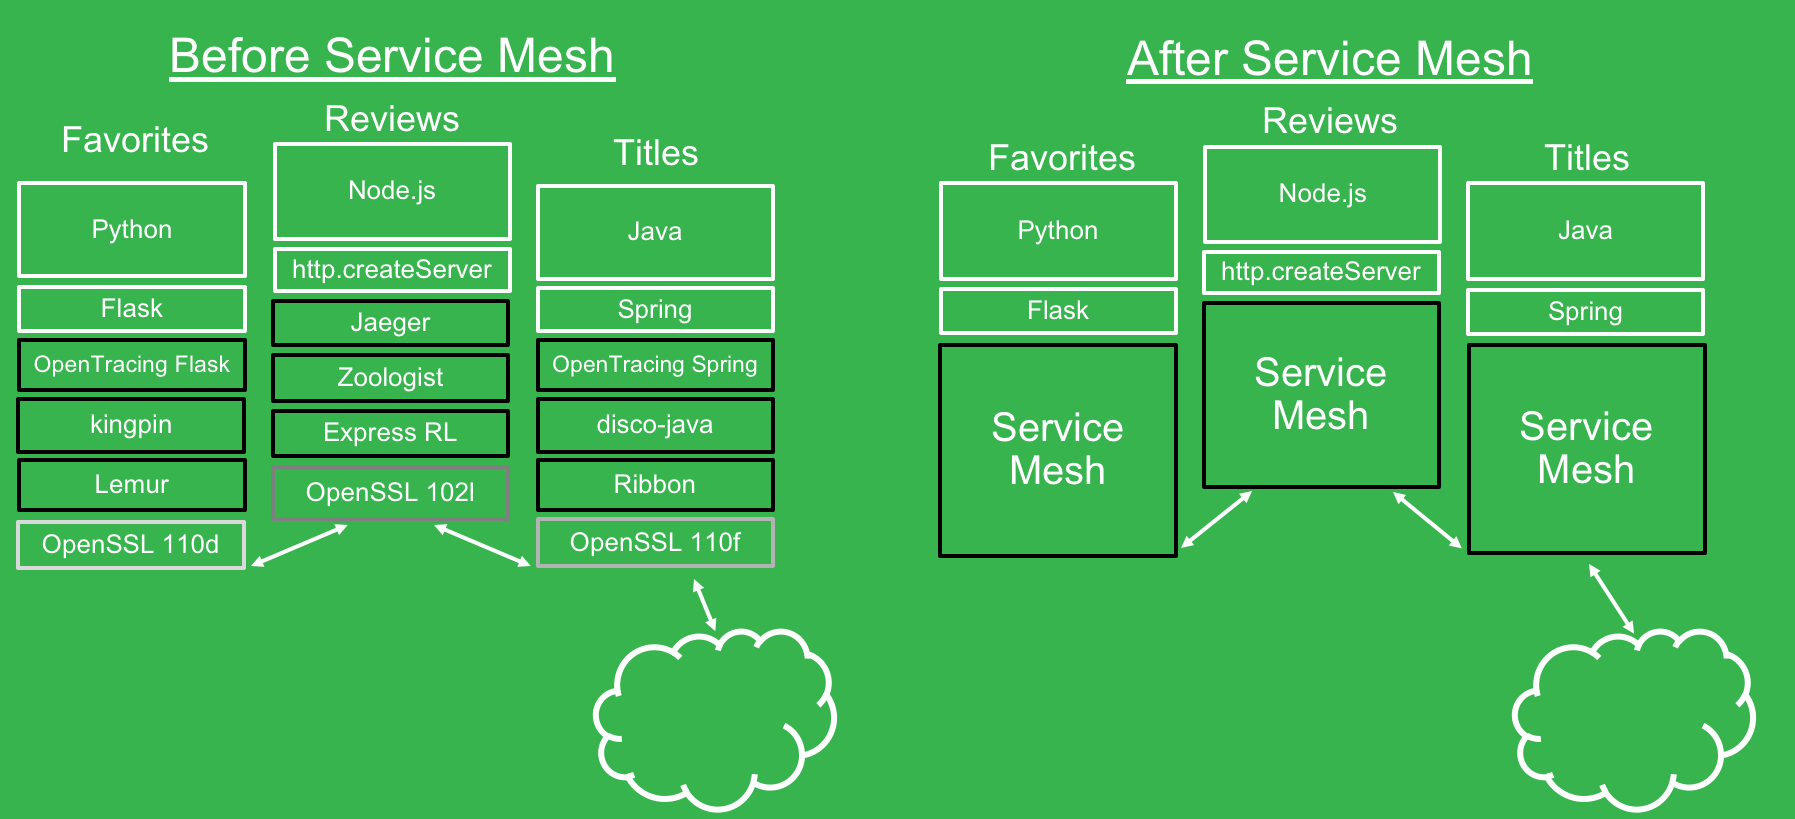 Before and After Service Mesh